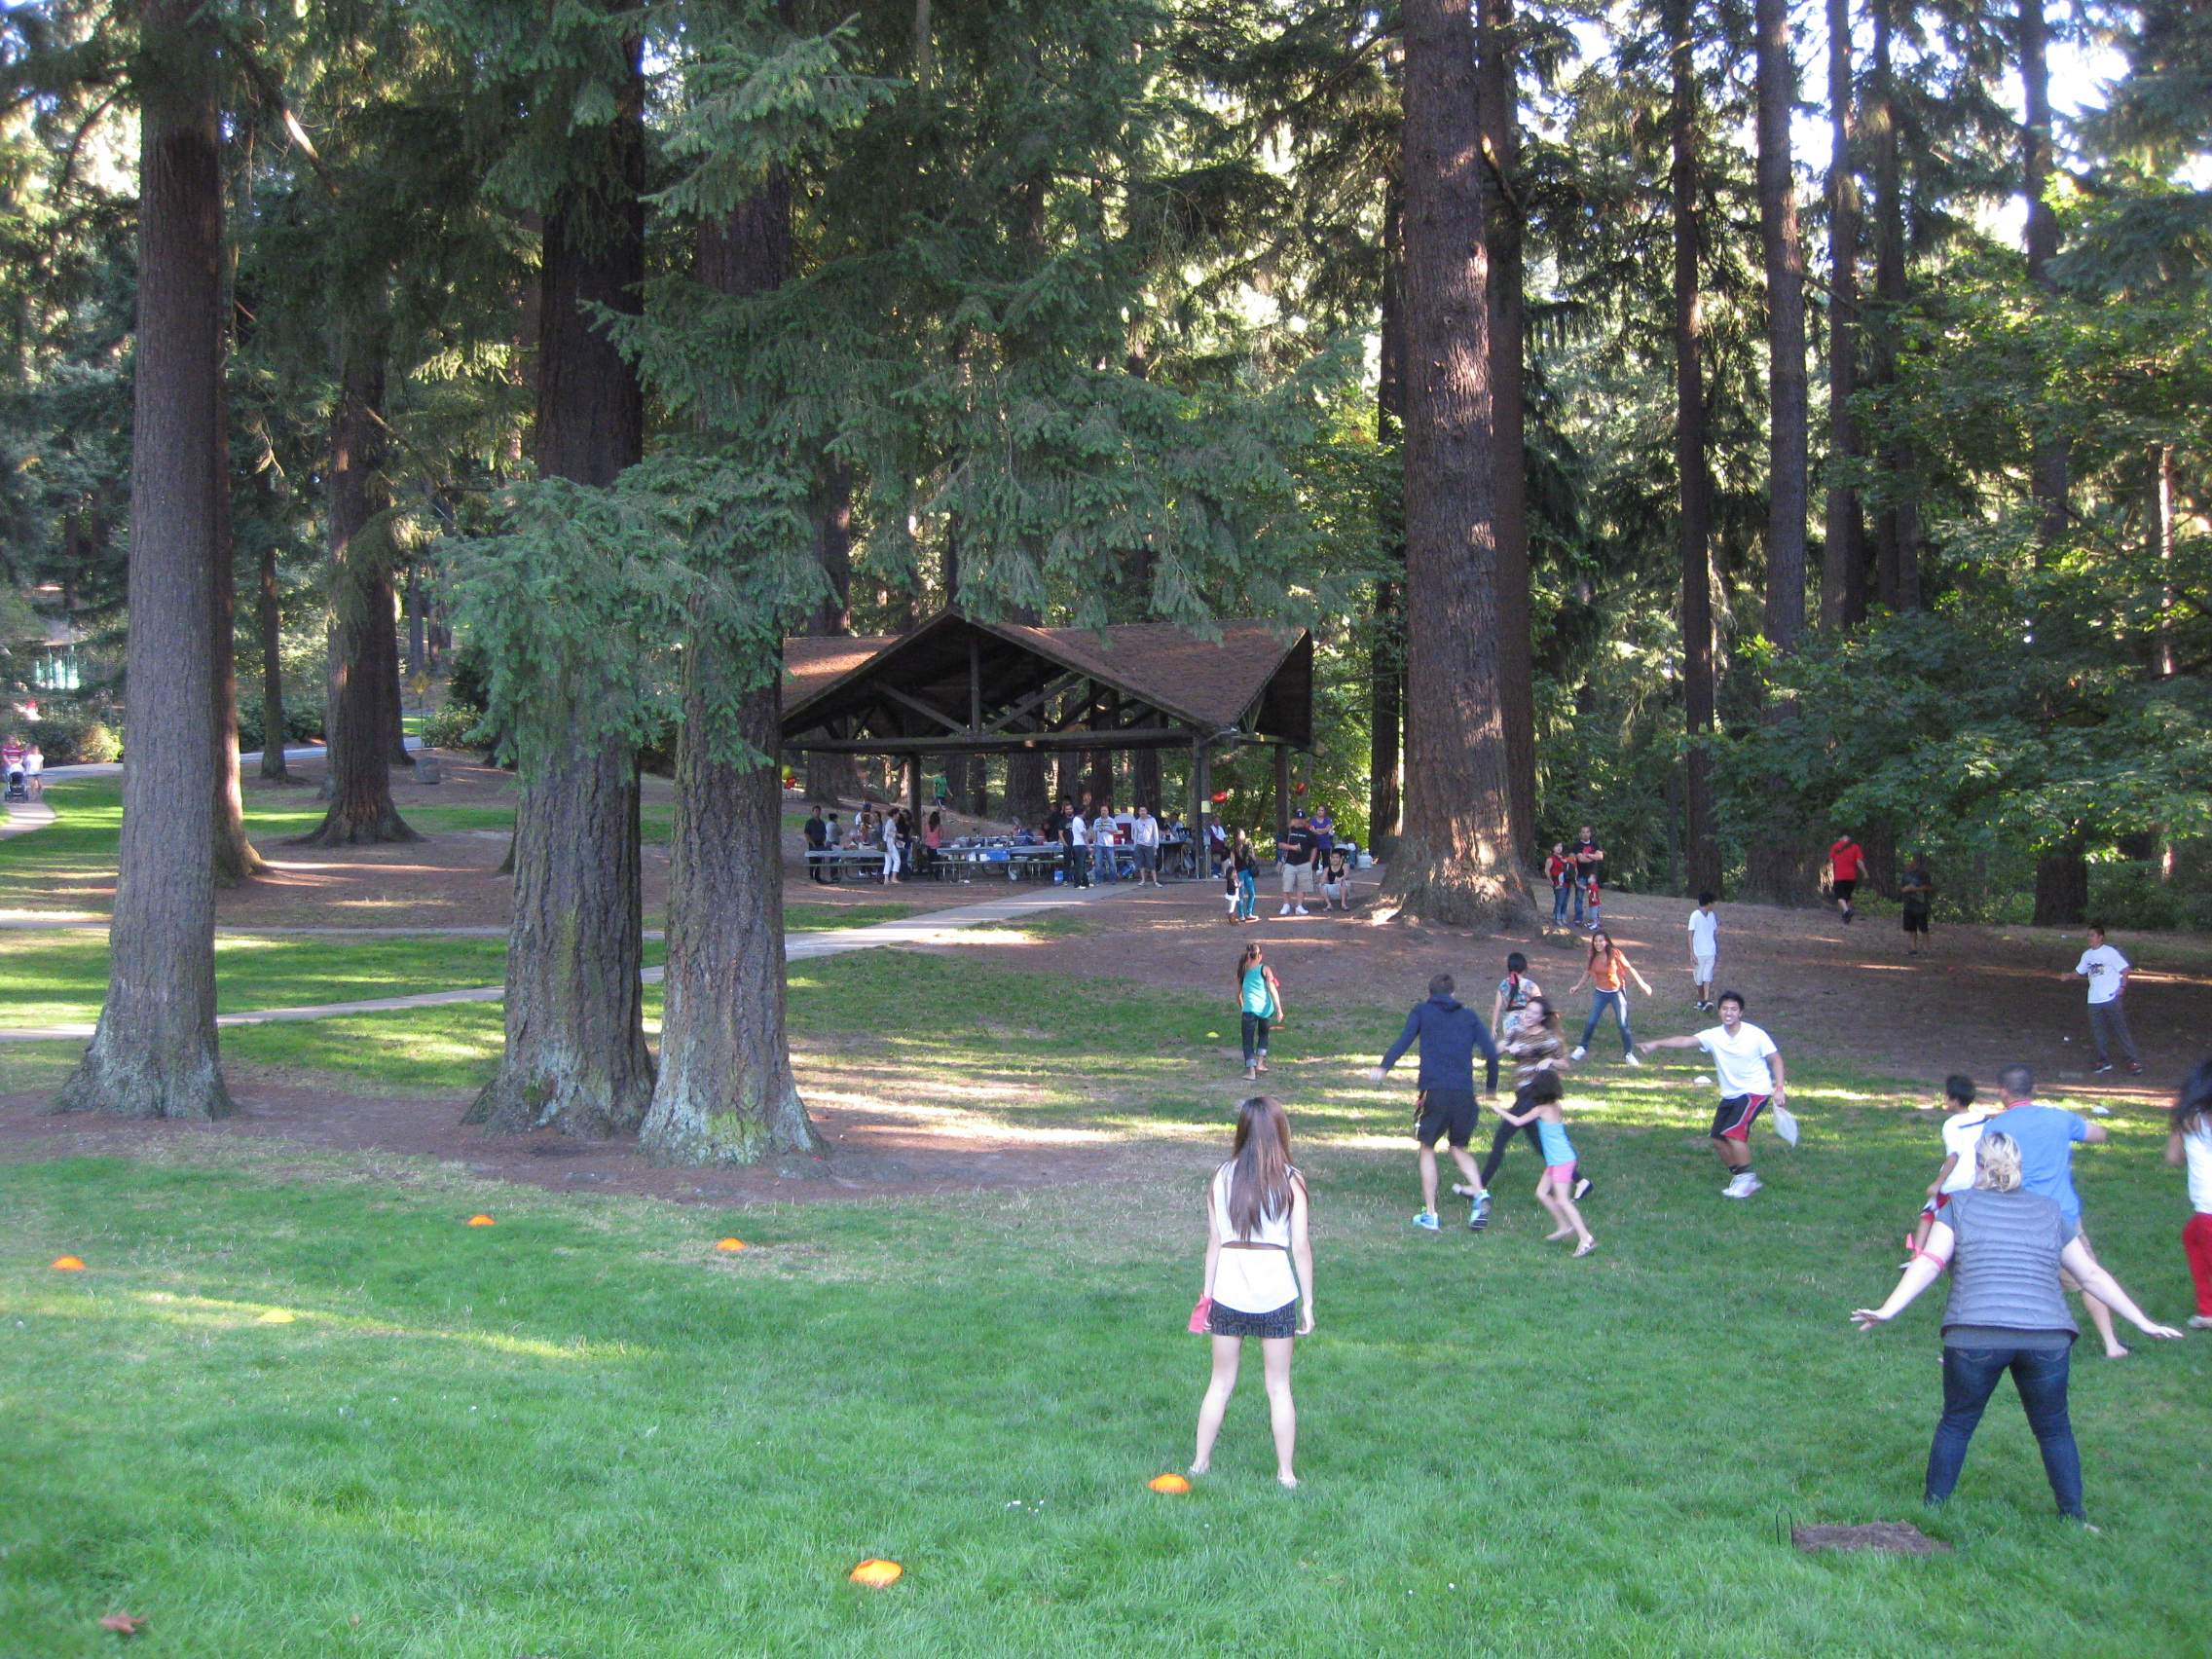 The picnic area.